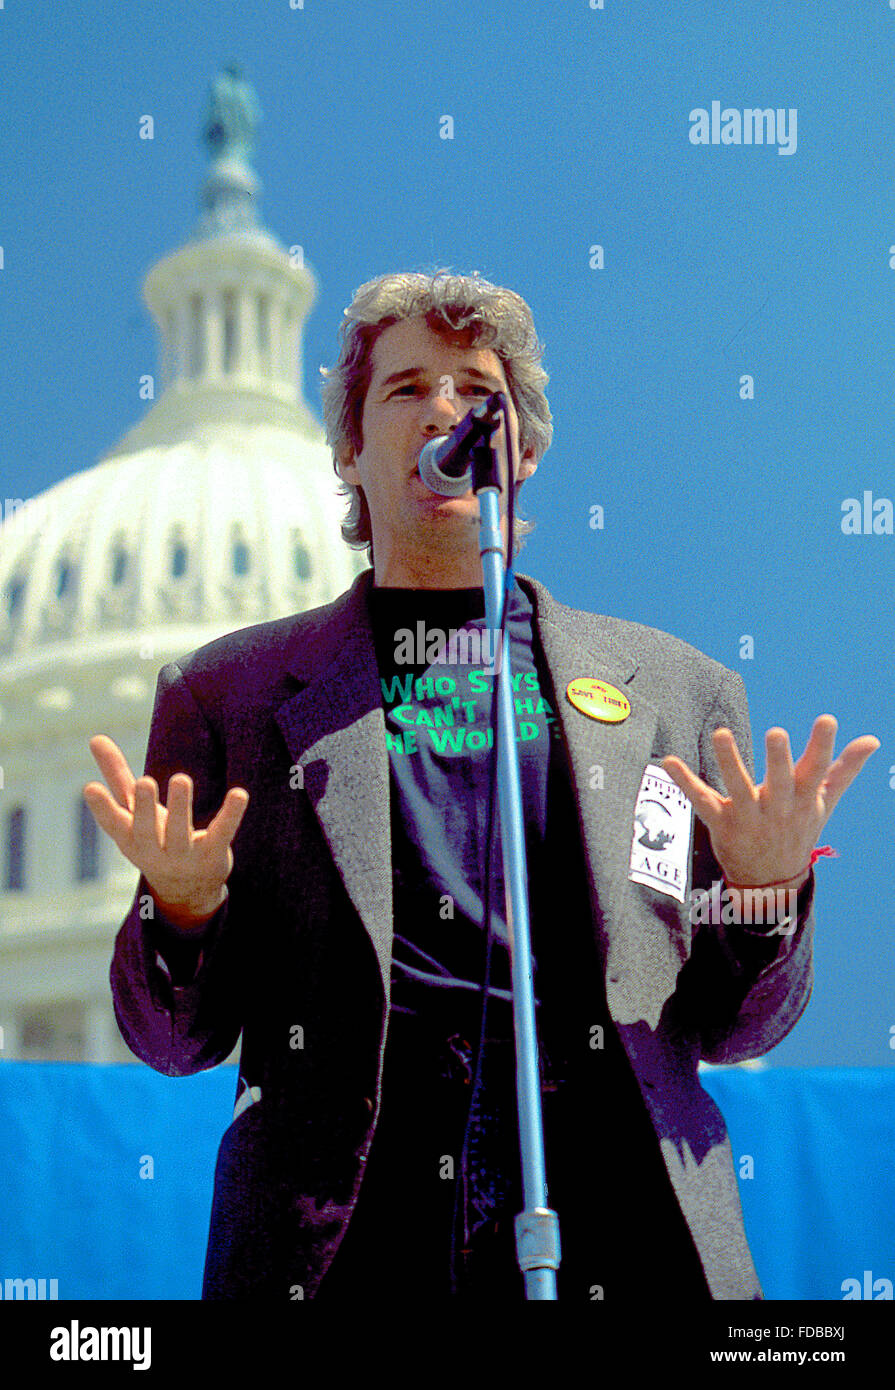 Washington, DC., USA, 22nd April , 1990 Richard Gere at Earth Day. Earth Day is an annual event, celebrated on April - Stock Image